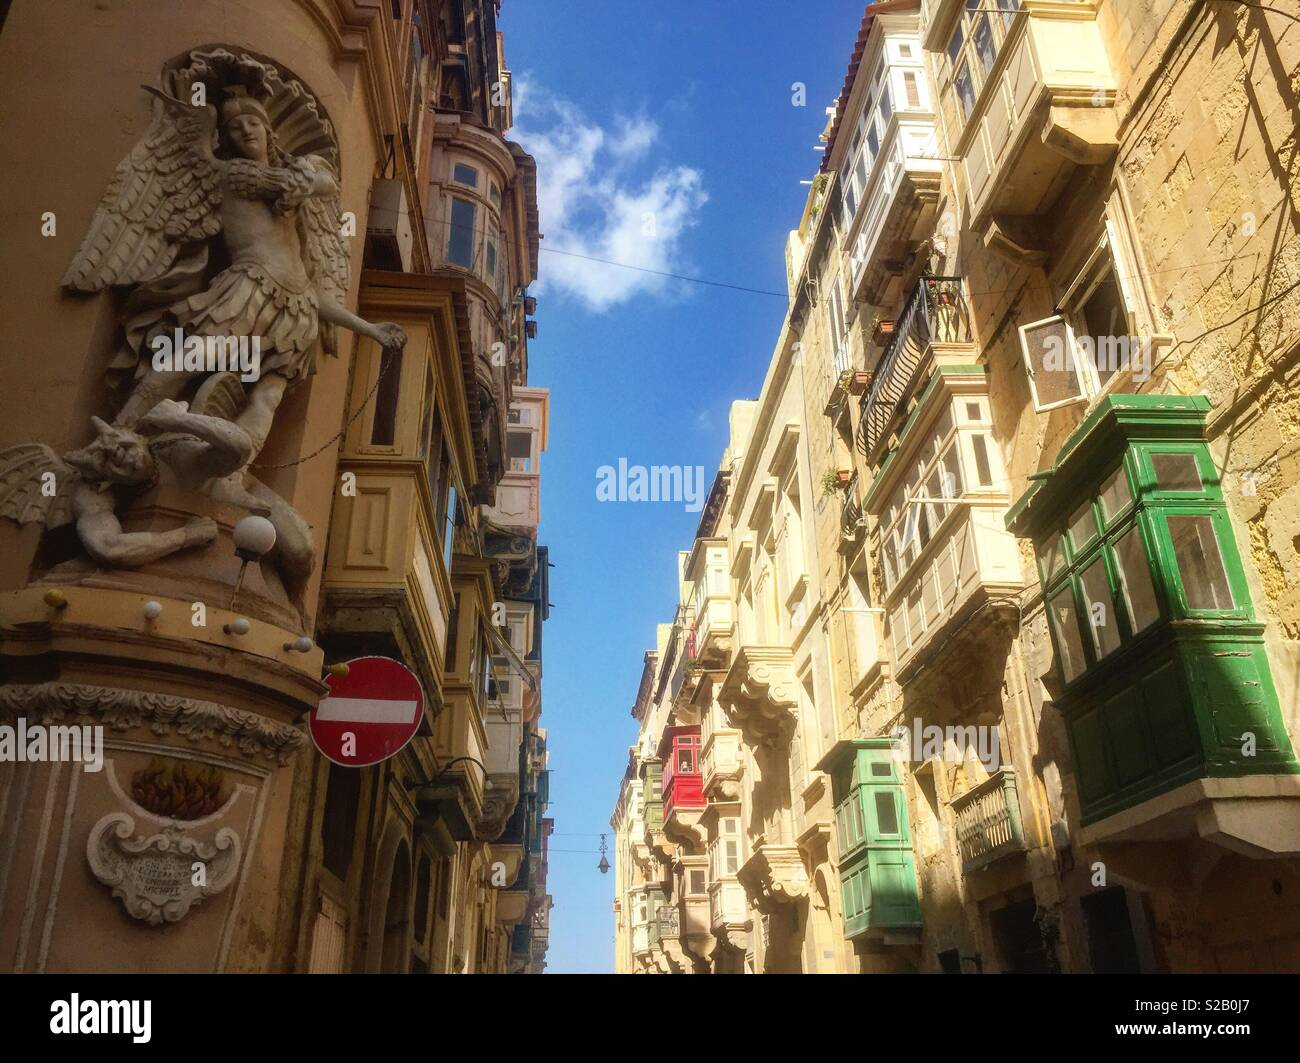 Valletta, Malta. European Cities. - Stock Image